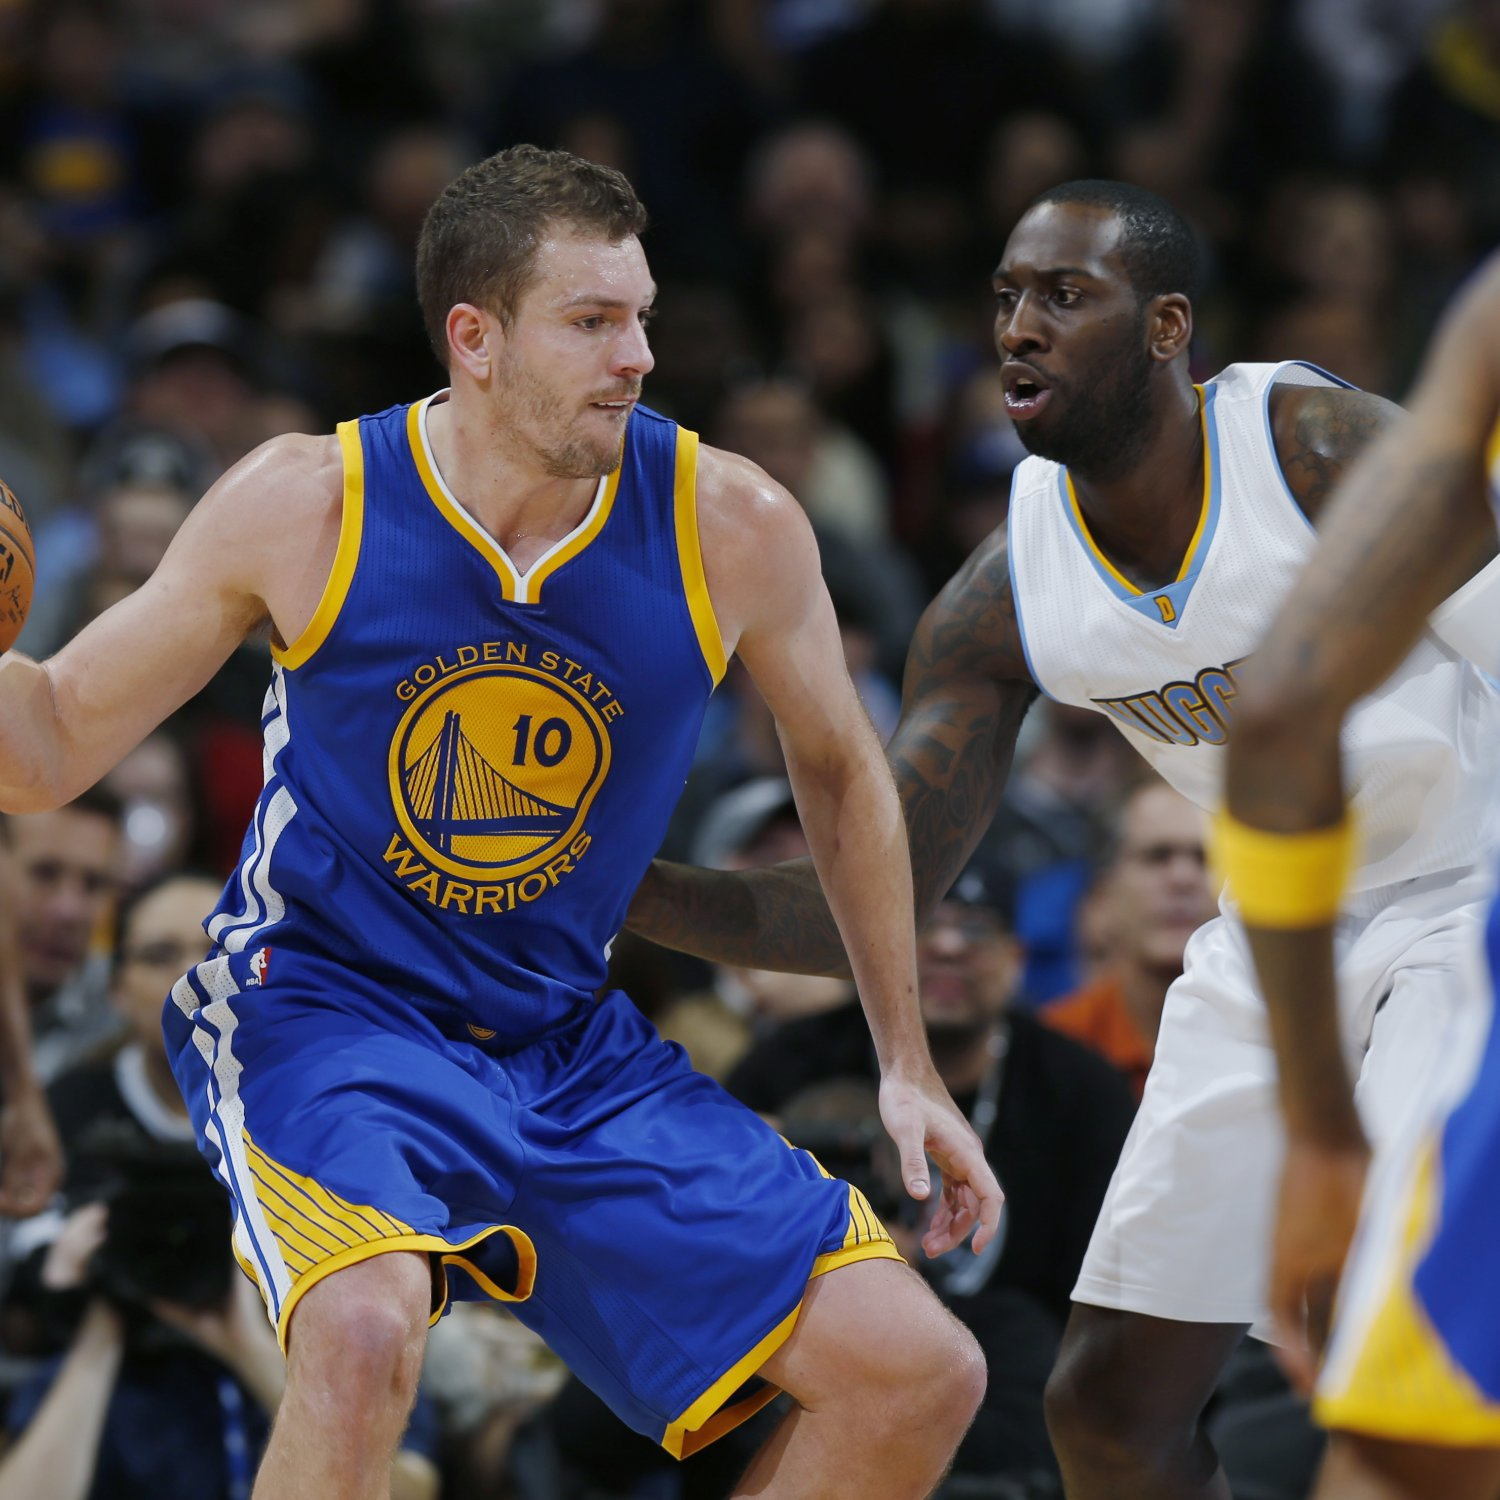 Golden State Warriors Vs. Denver Nuggets 3/13/15: Video